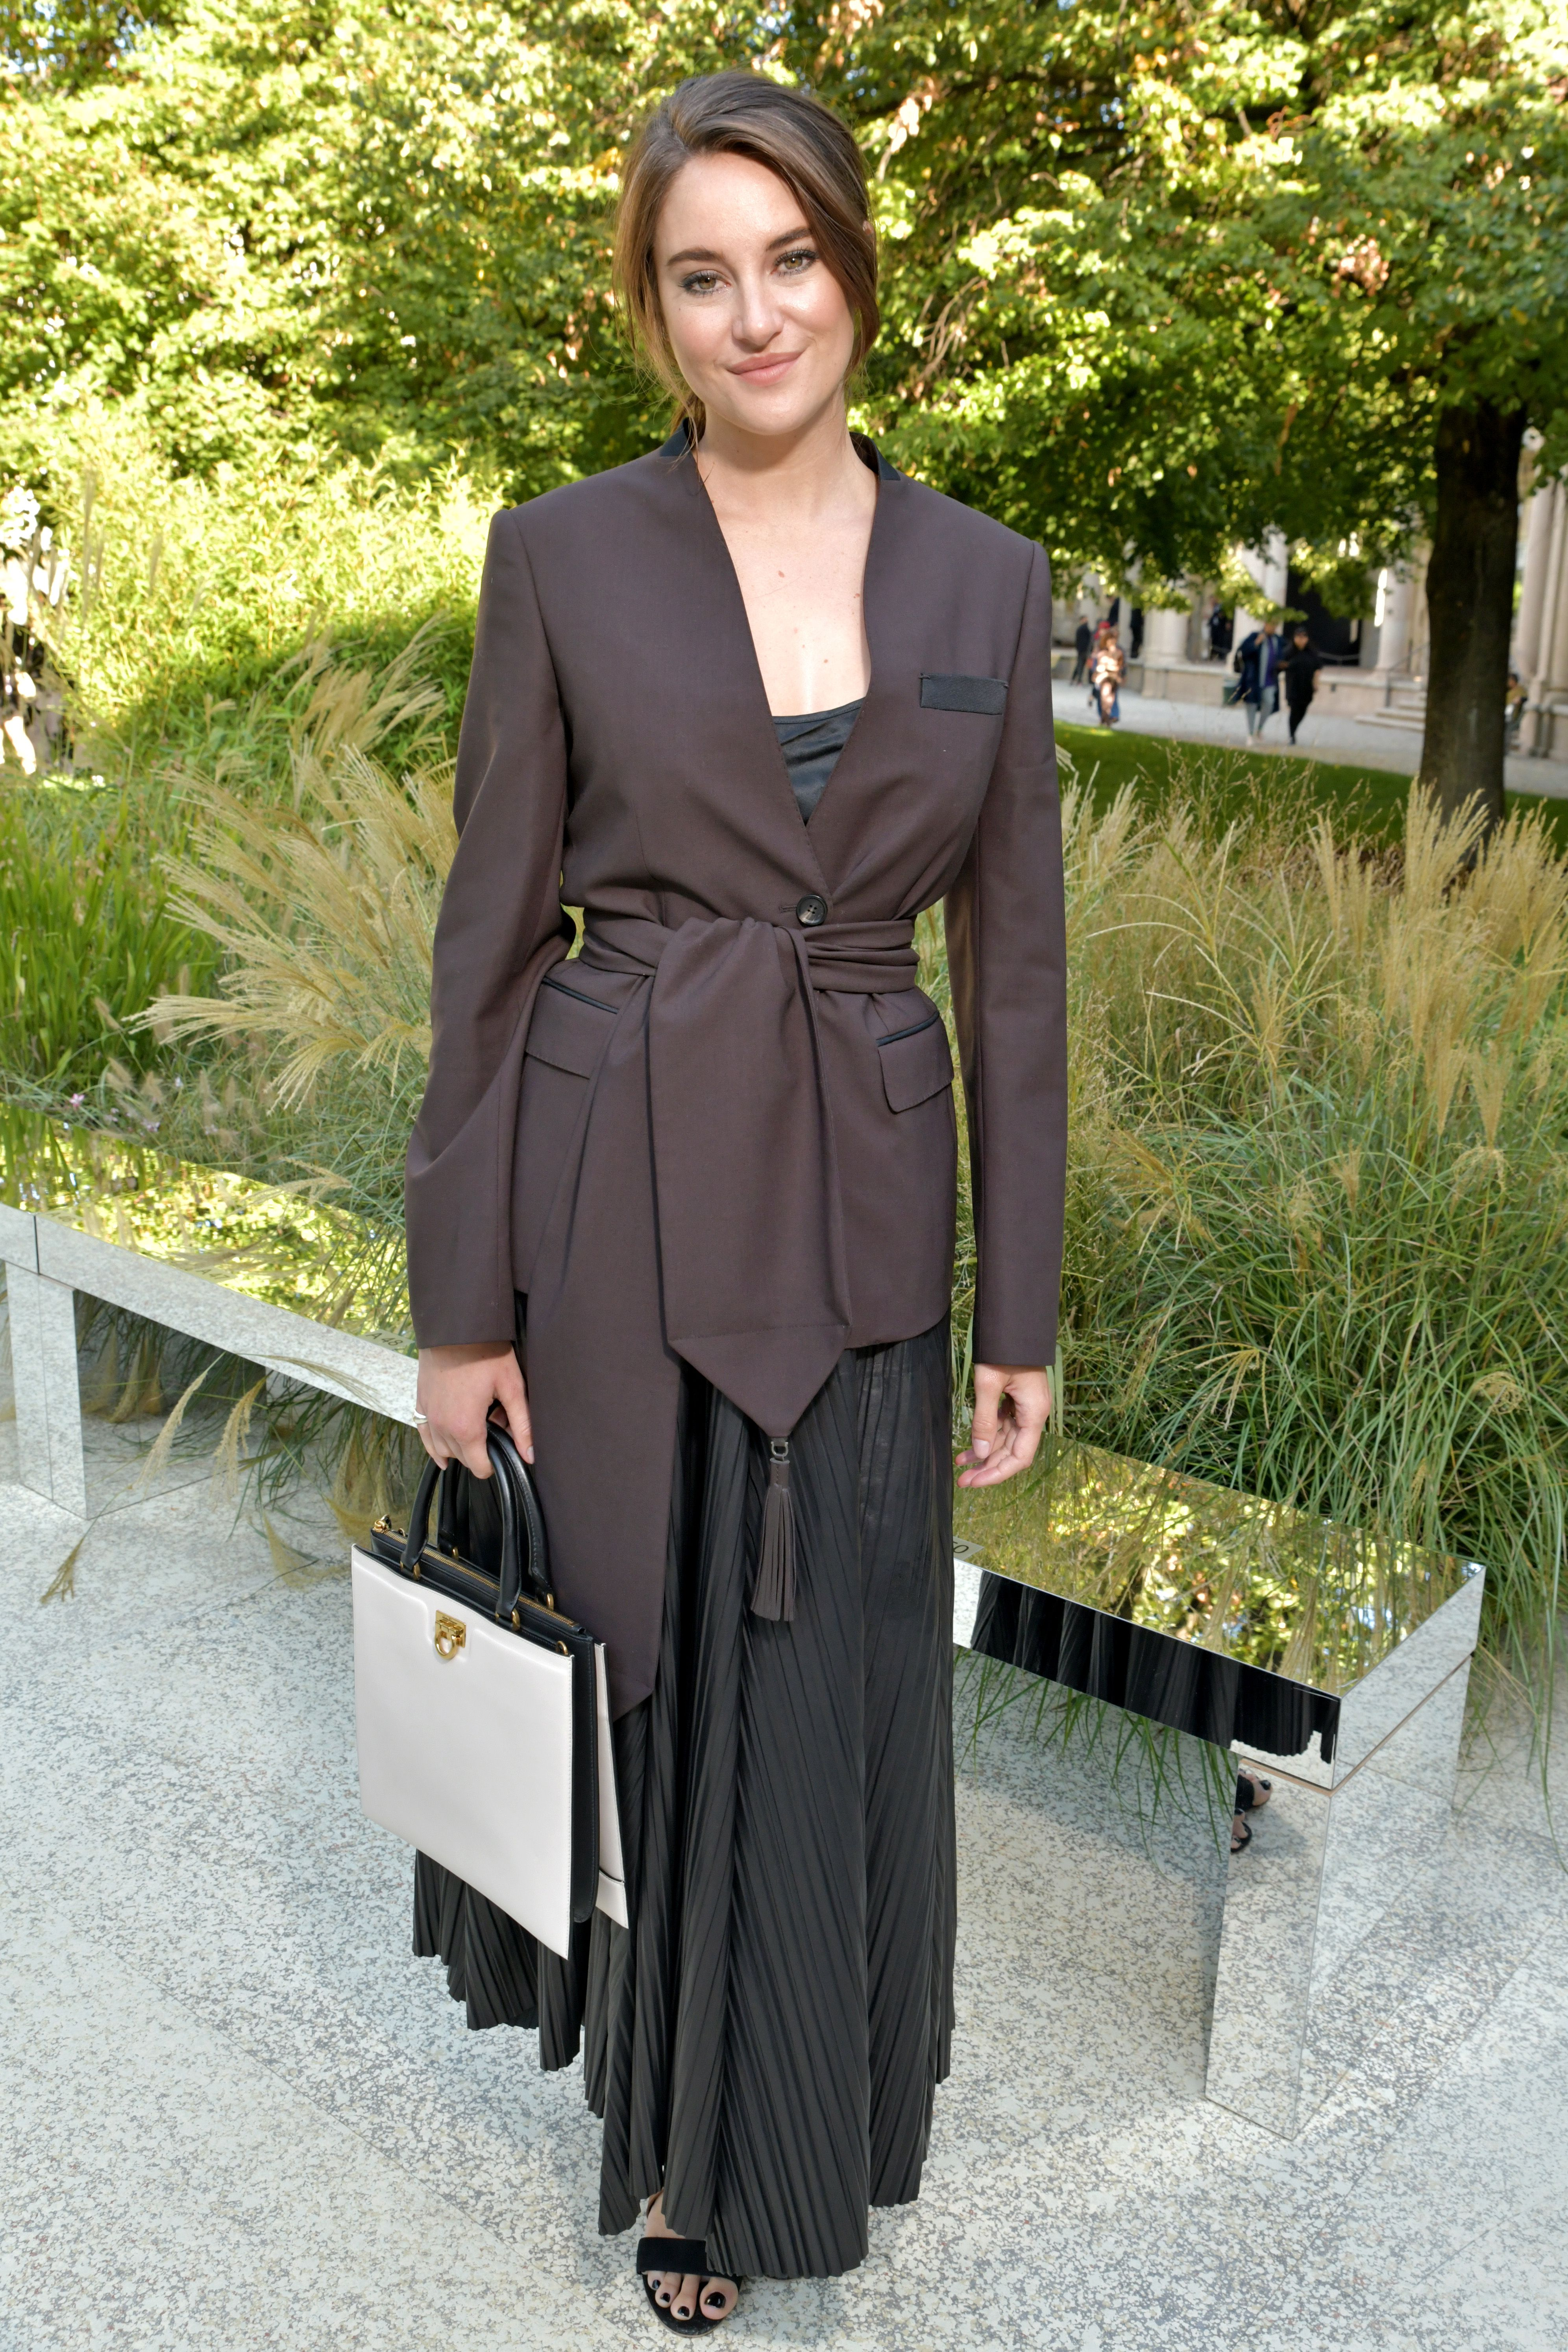 Shailene Woodley in the front rowSalvatore Ferragamo show, Front Row, Spring Summer 2020, Milan Fashion Week, Italy - 21 Sep 2019